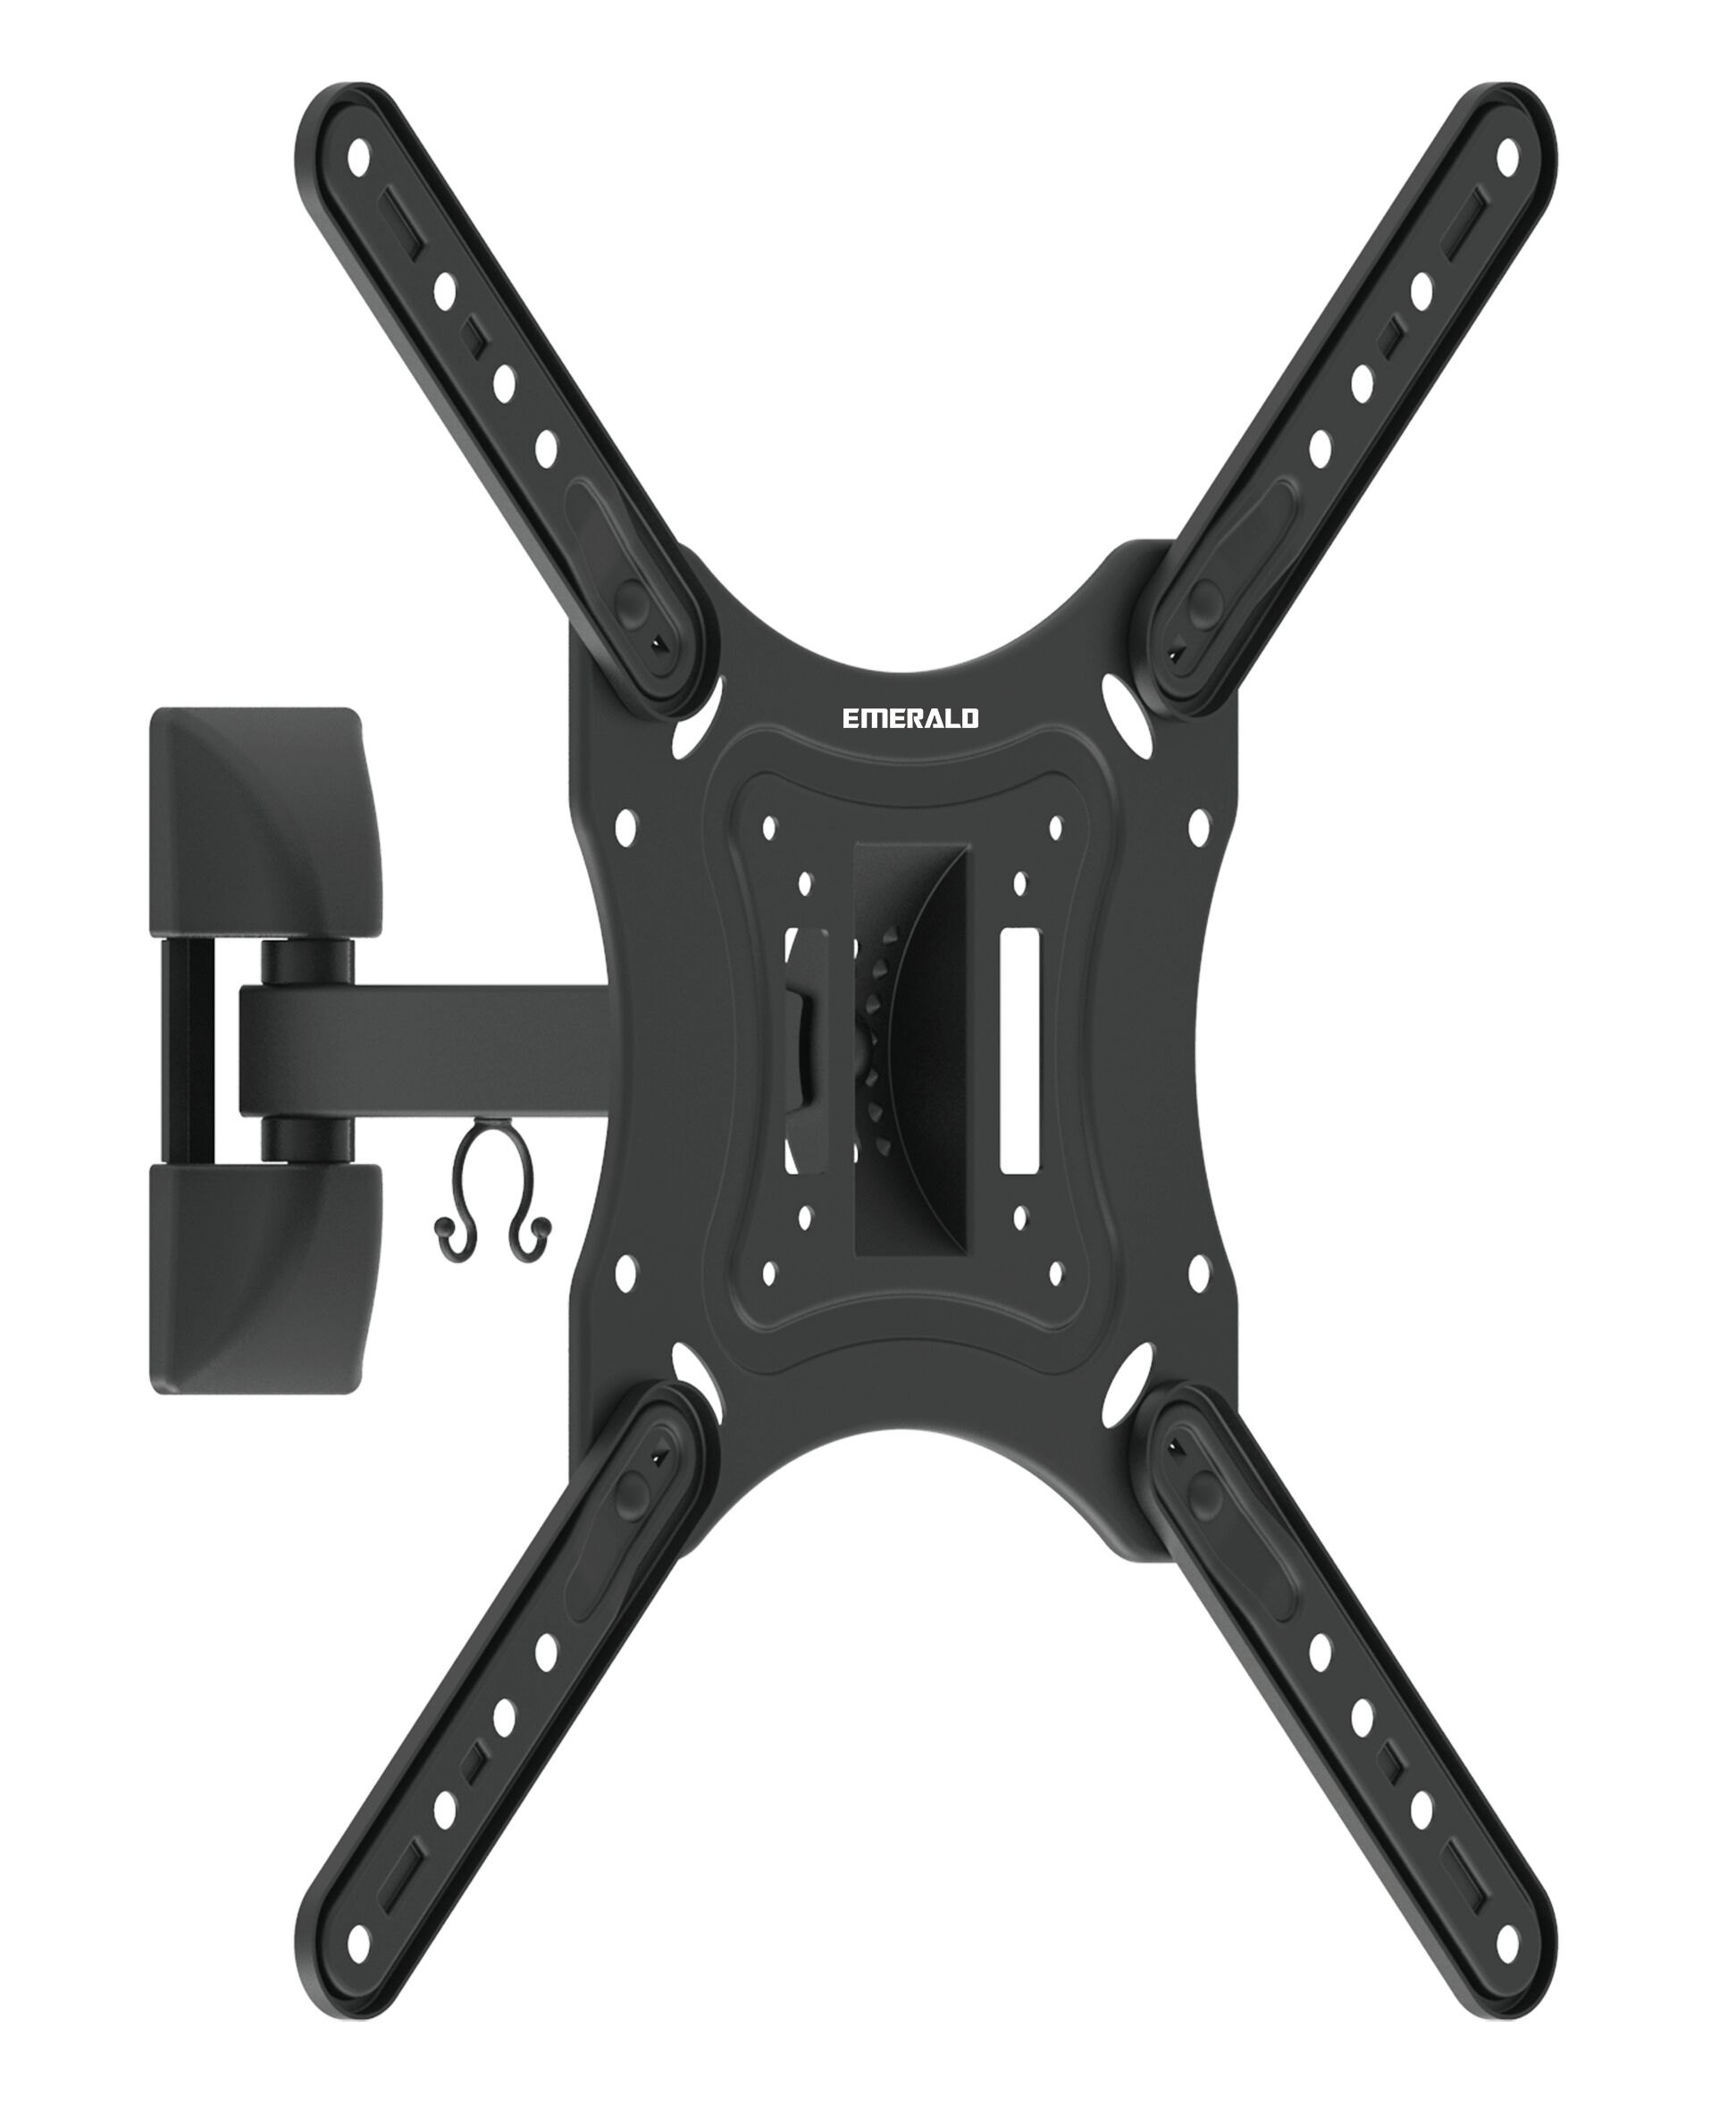 This Emerald Full motion TV mount holds 23-55